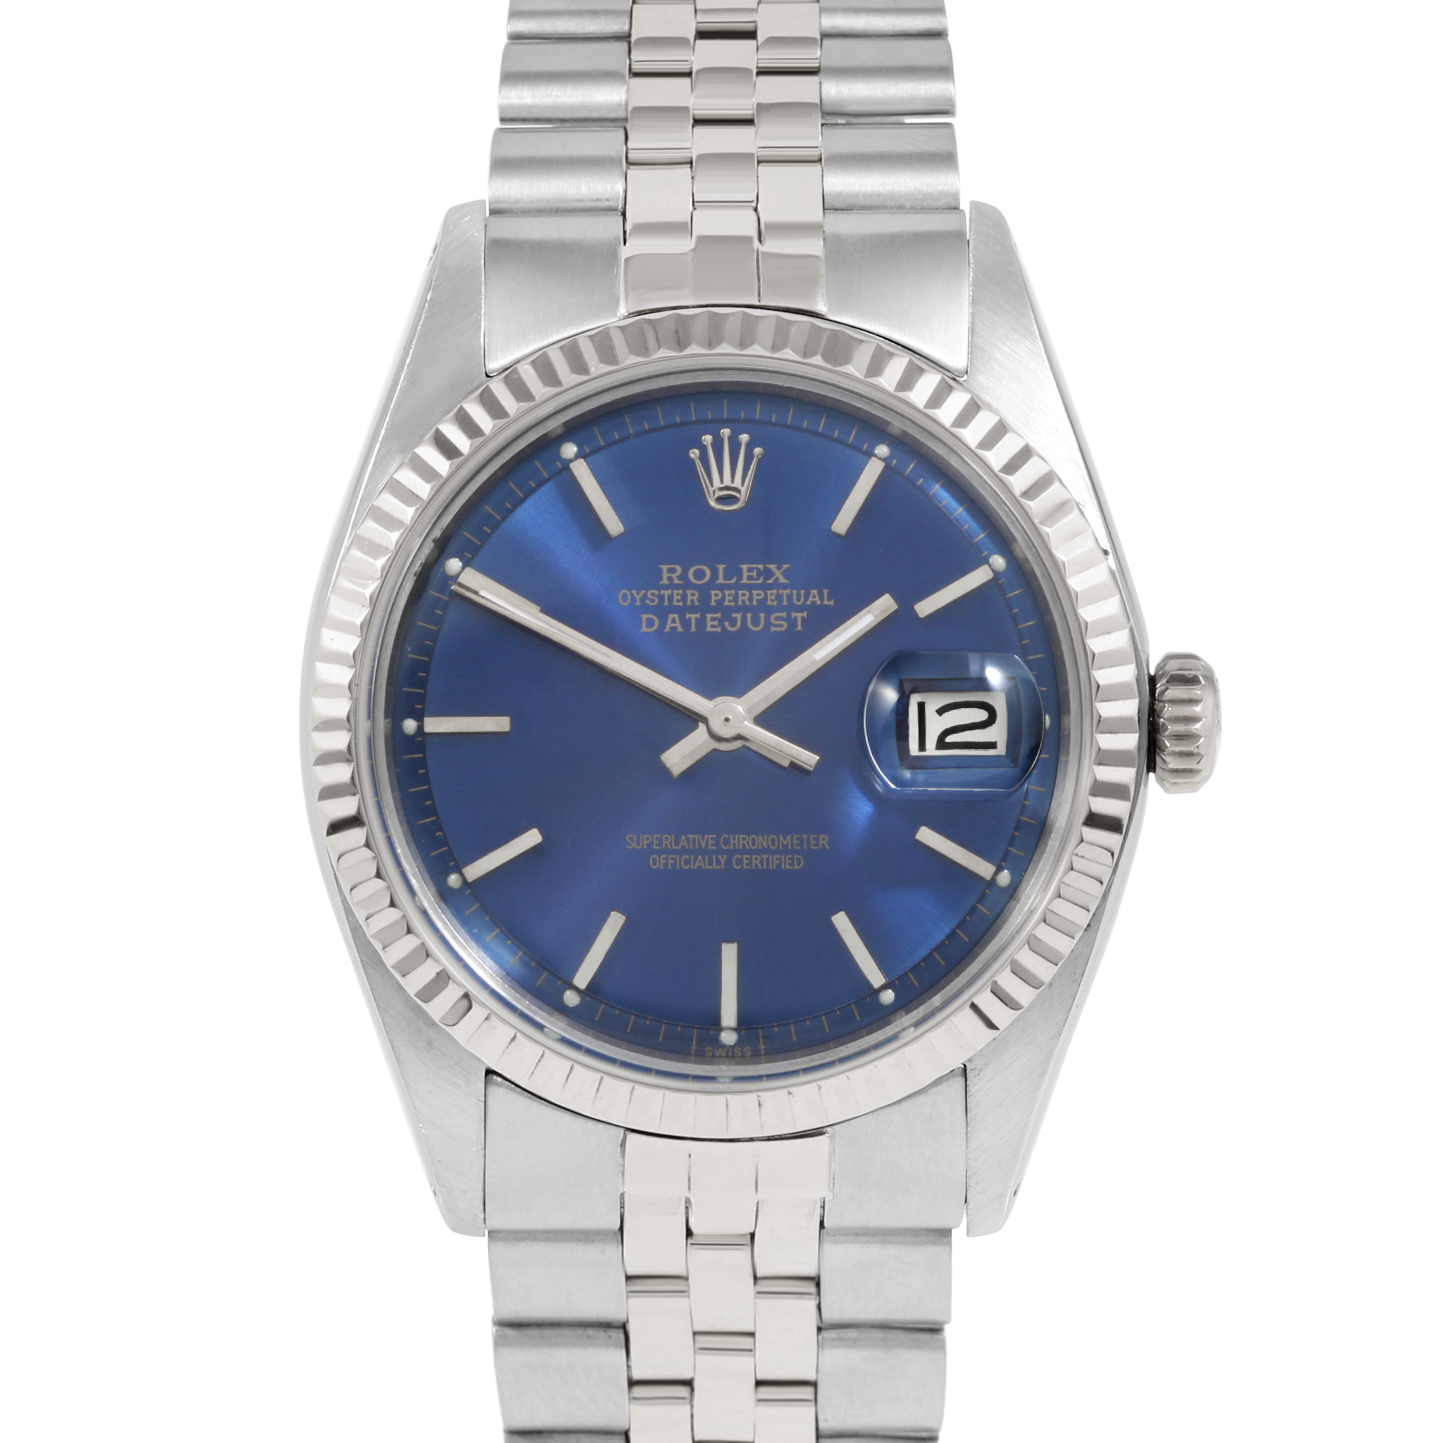 Rolex Vintage Datejust 1601 Blue Stick Dial - Stainless Steel - Fluted Bezel On A Jubilee Band - Pre-Owned